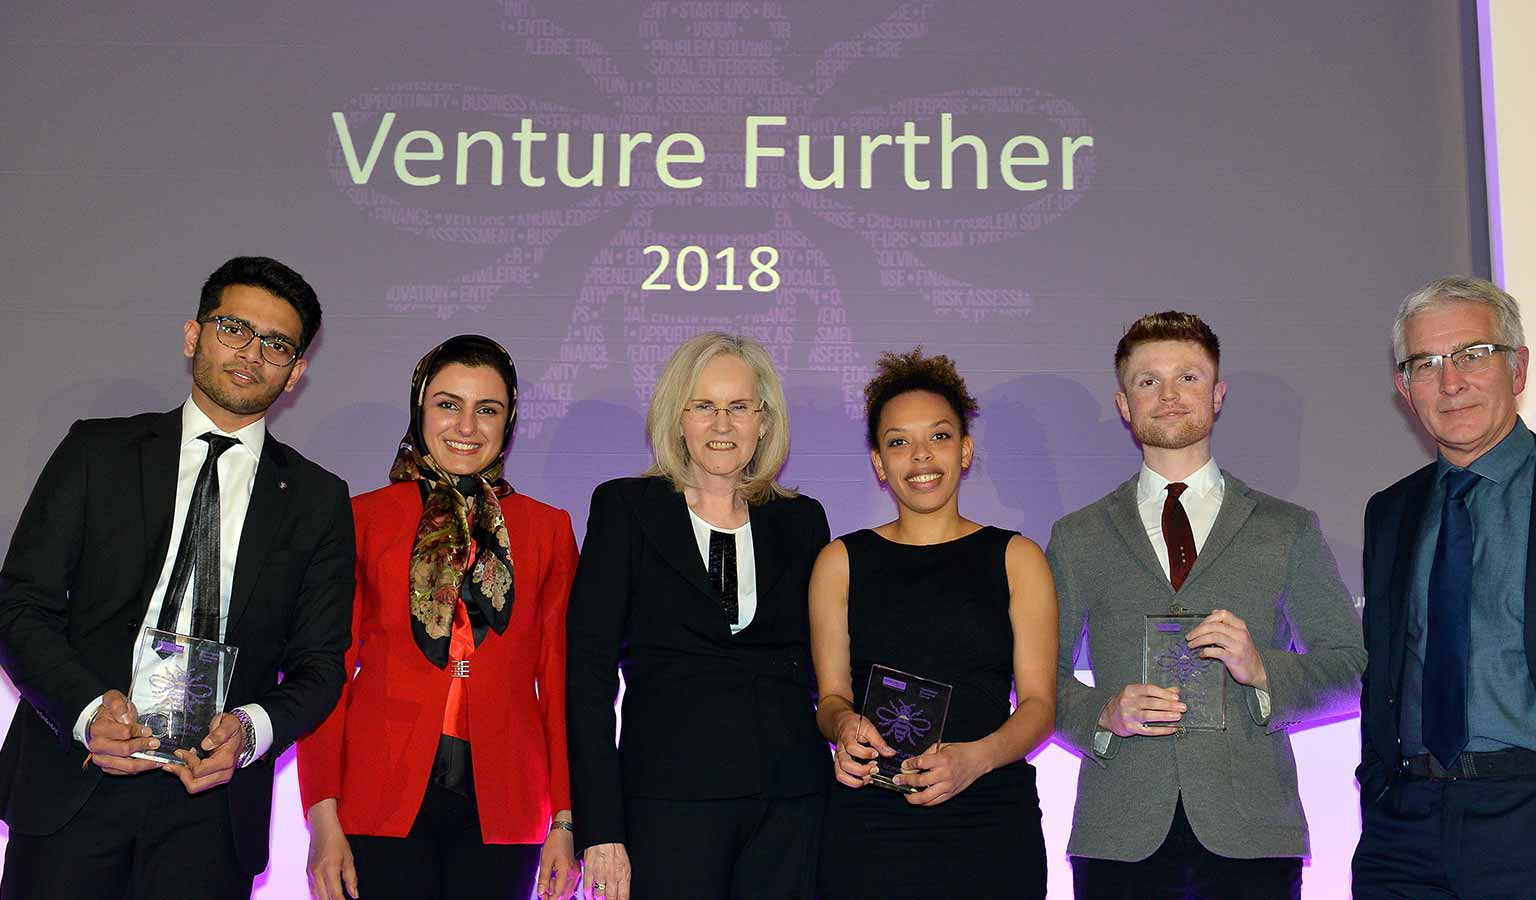 Venture Further start-up competition testimonial